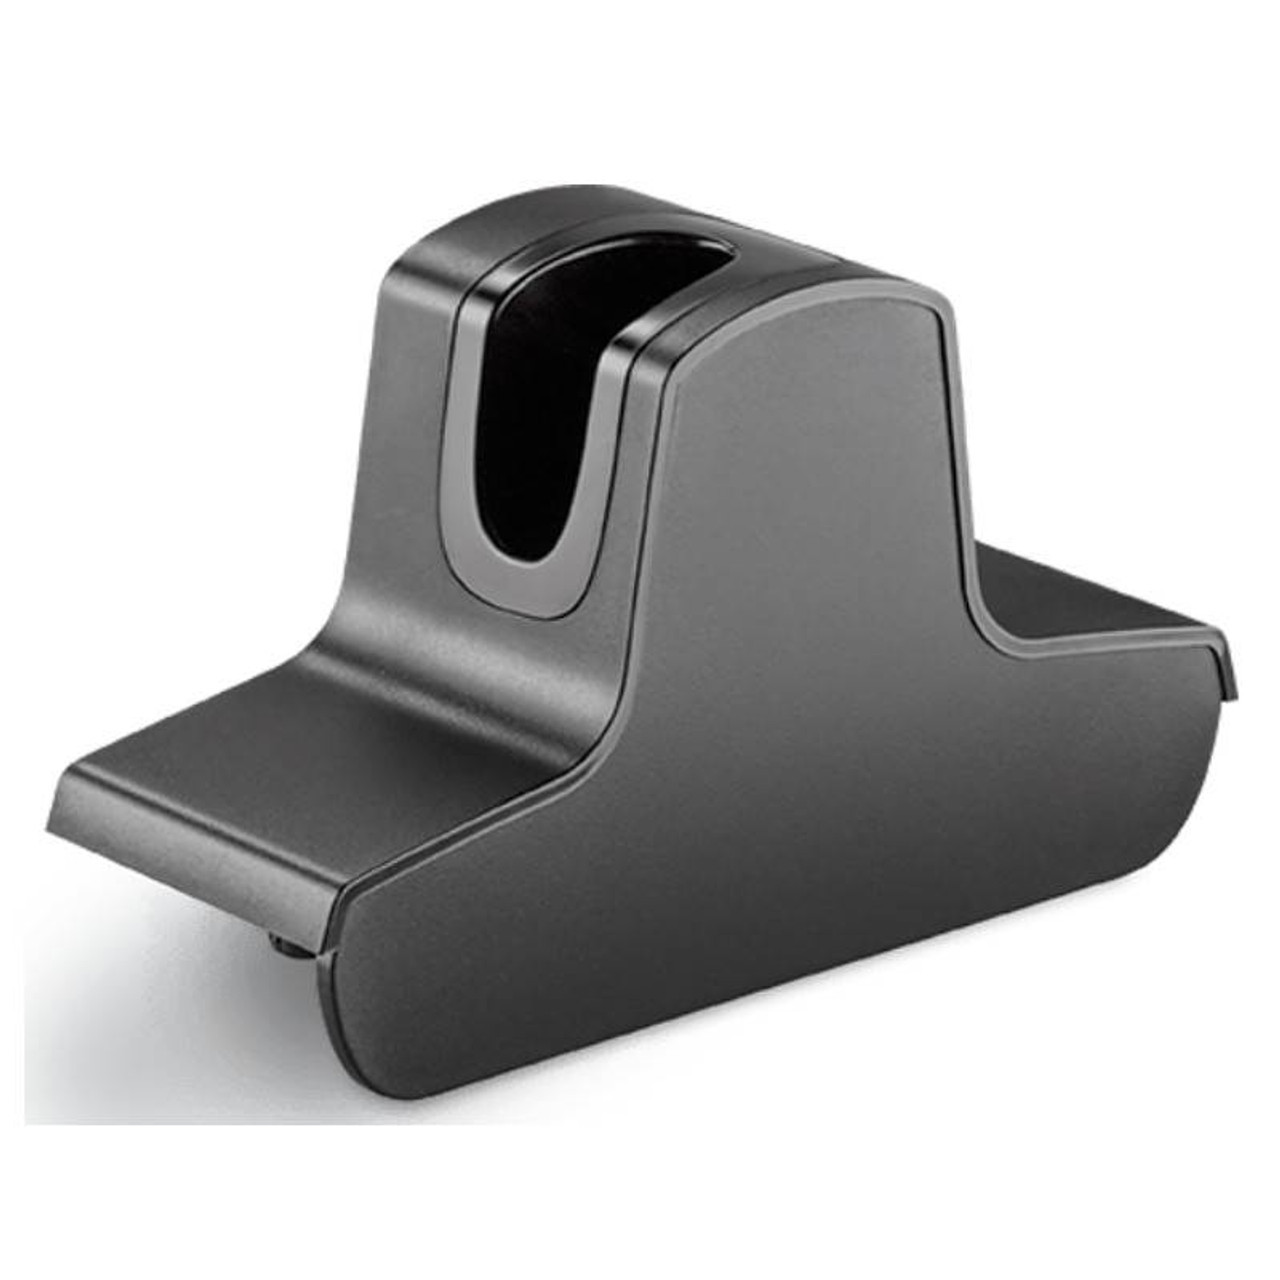 Image for Plantronics Savi Base Charge Cradle Magnetic for W730/W430 CX Computer Superstore